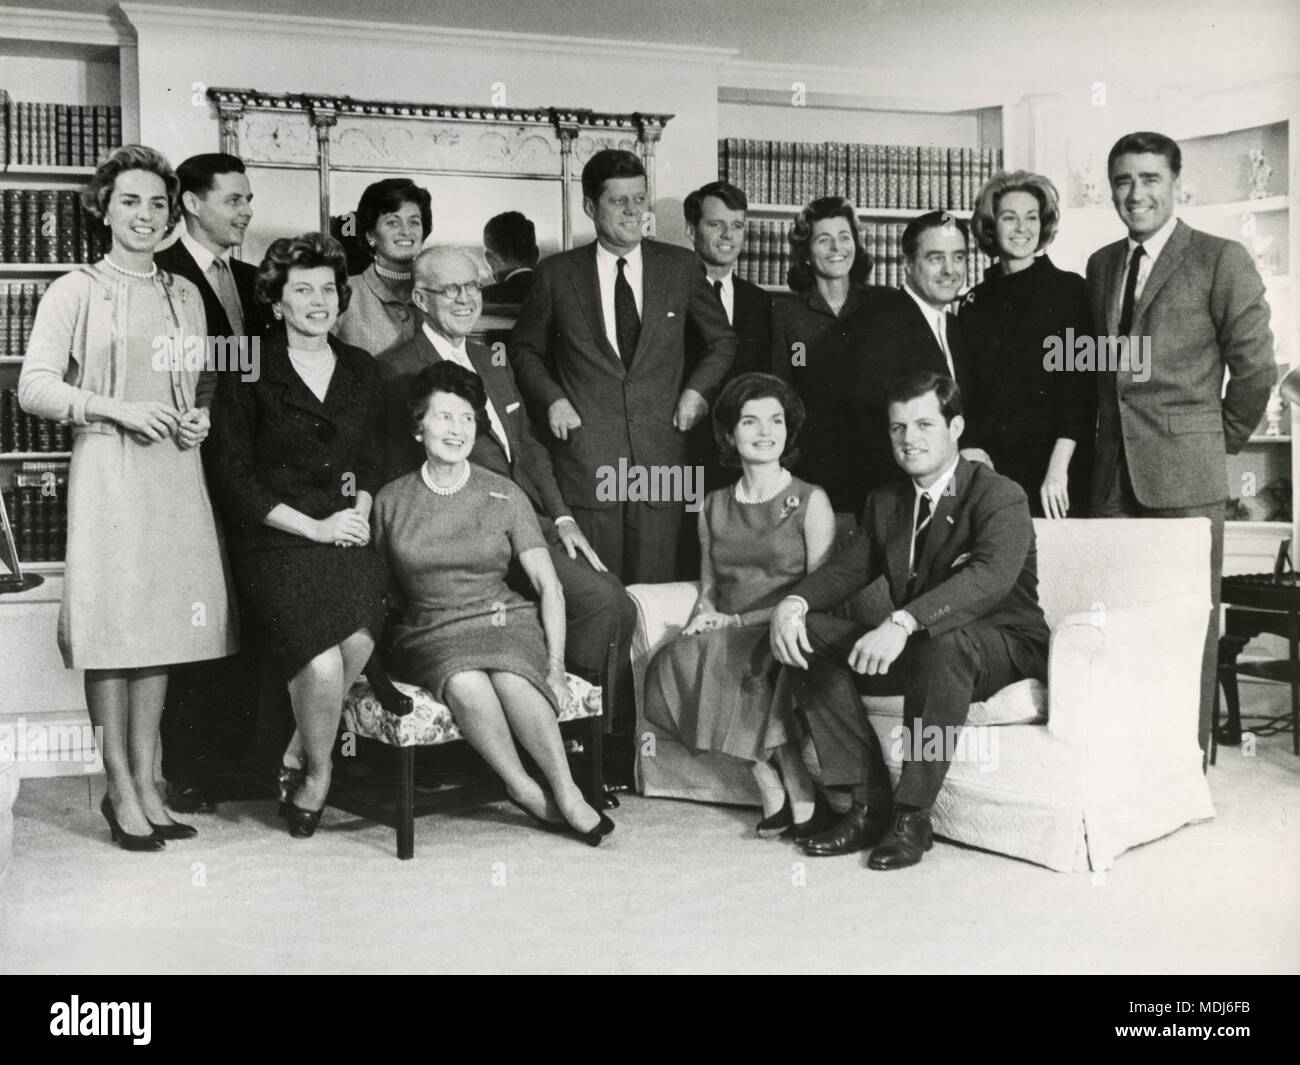 The Kennedy family: Ethel Skakel Kennedy, Stephen Smith and wife Jean Kennedy, JFK, Robert Kennedy, Patricia Kennedy Lawford, Sargent Shriver, Joan Bennet Kennedy and Peter Lawford, USA 1961 - Stock Image